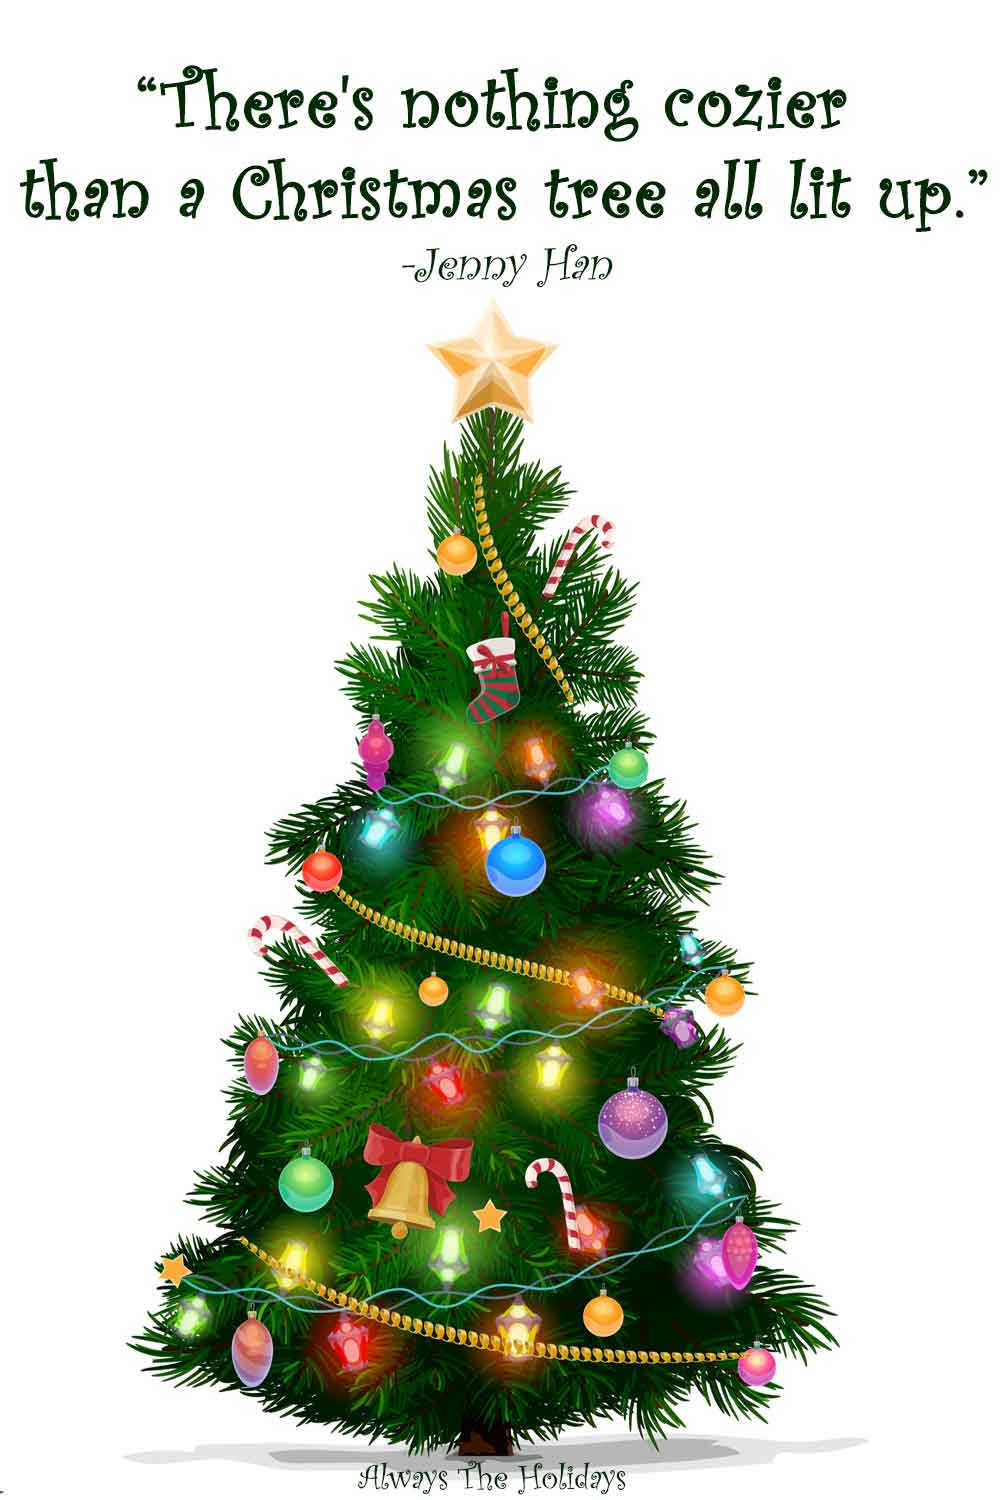 A cartoon Christmas tree with a quotes about Christmas trees text overlay.